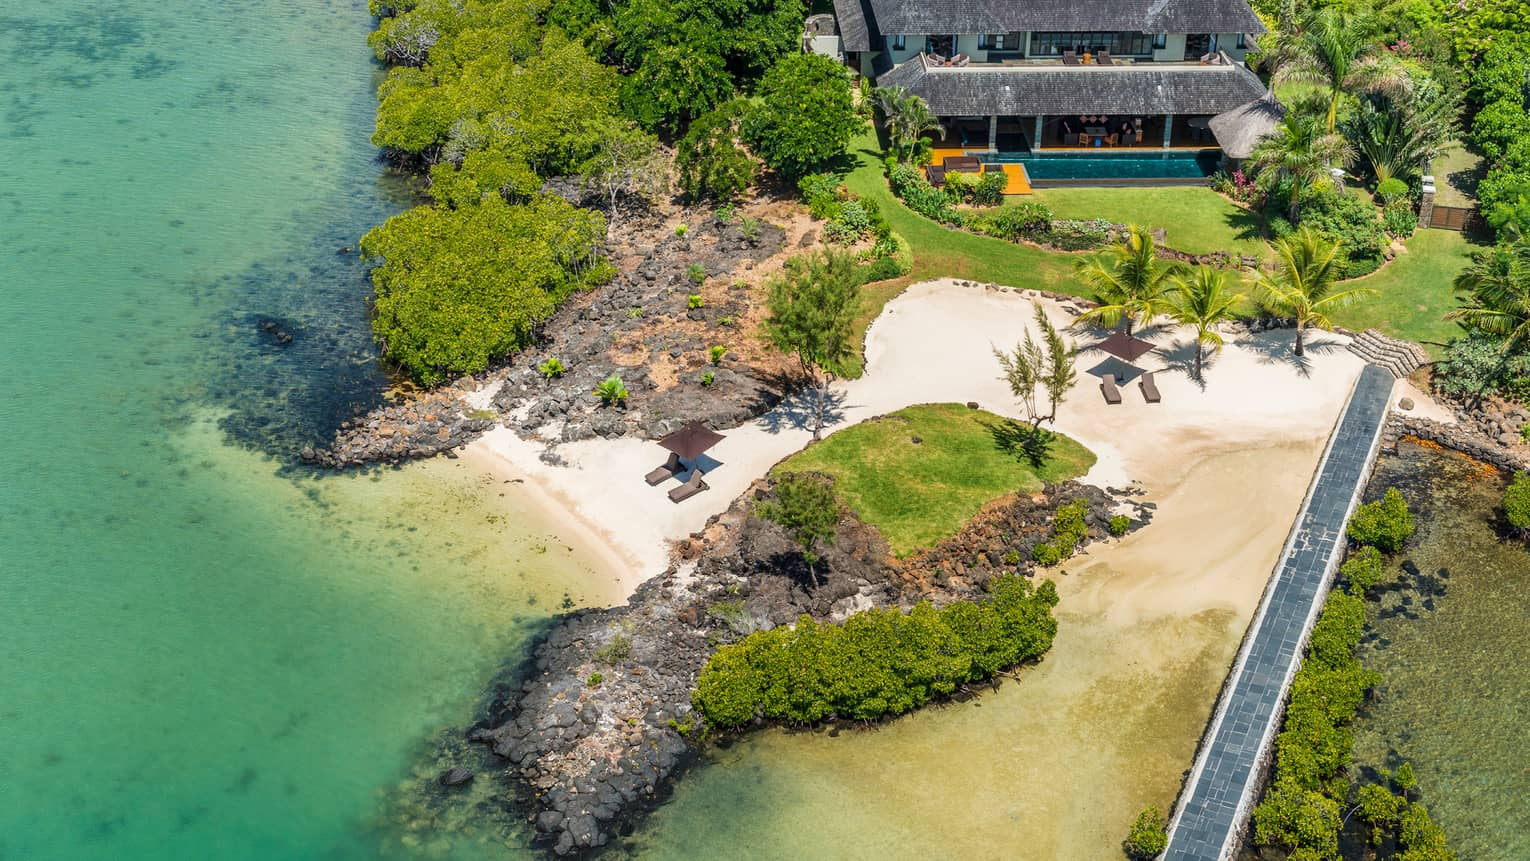 Aerial view of large, thatched-roof villa by white sand beach, large rocks on shore